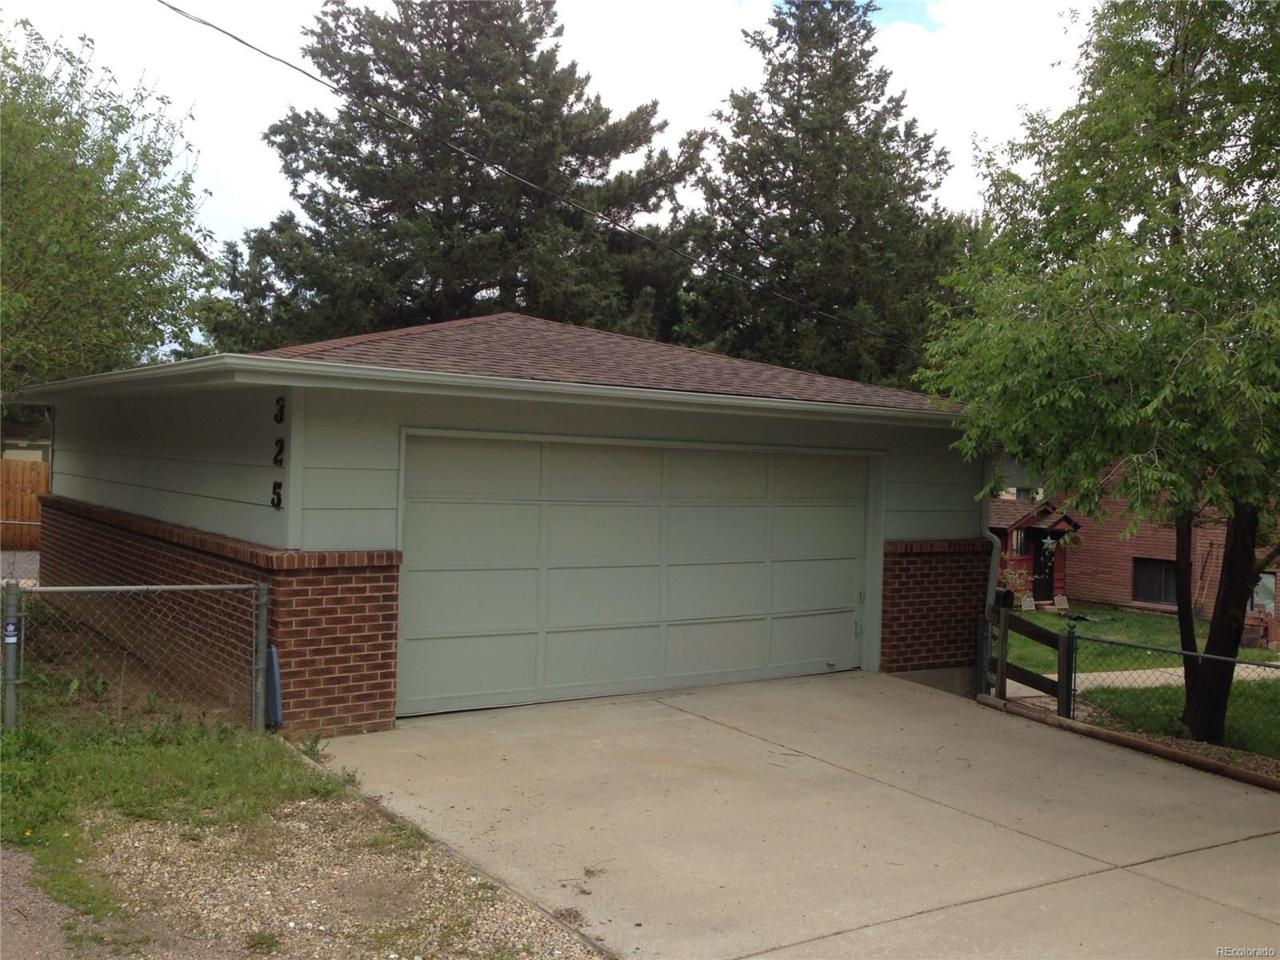 325 W Midway Boulevard, Broomfield, CO 80020 (MLS #2813900) :: 8z Real Estate